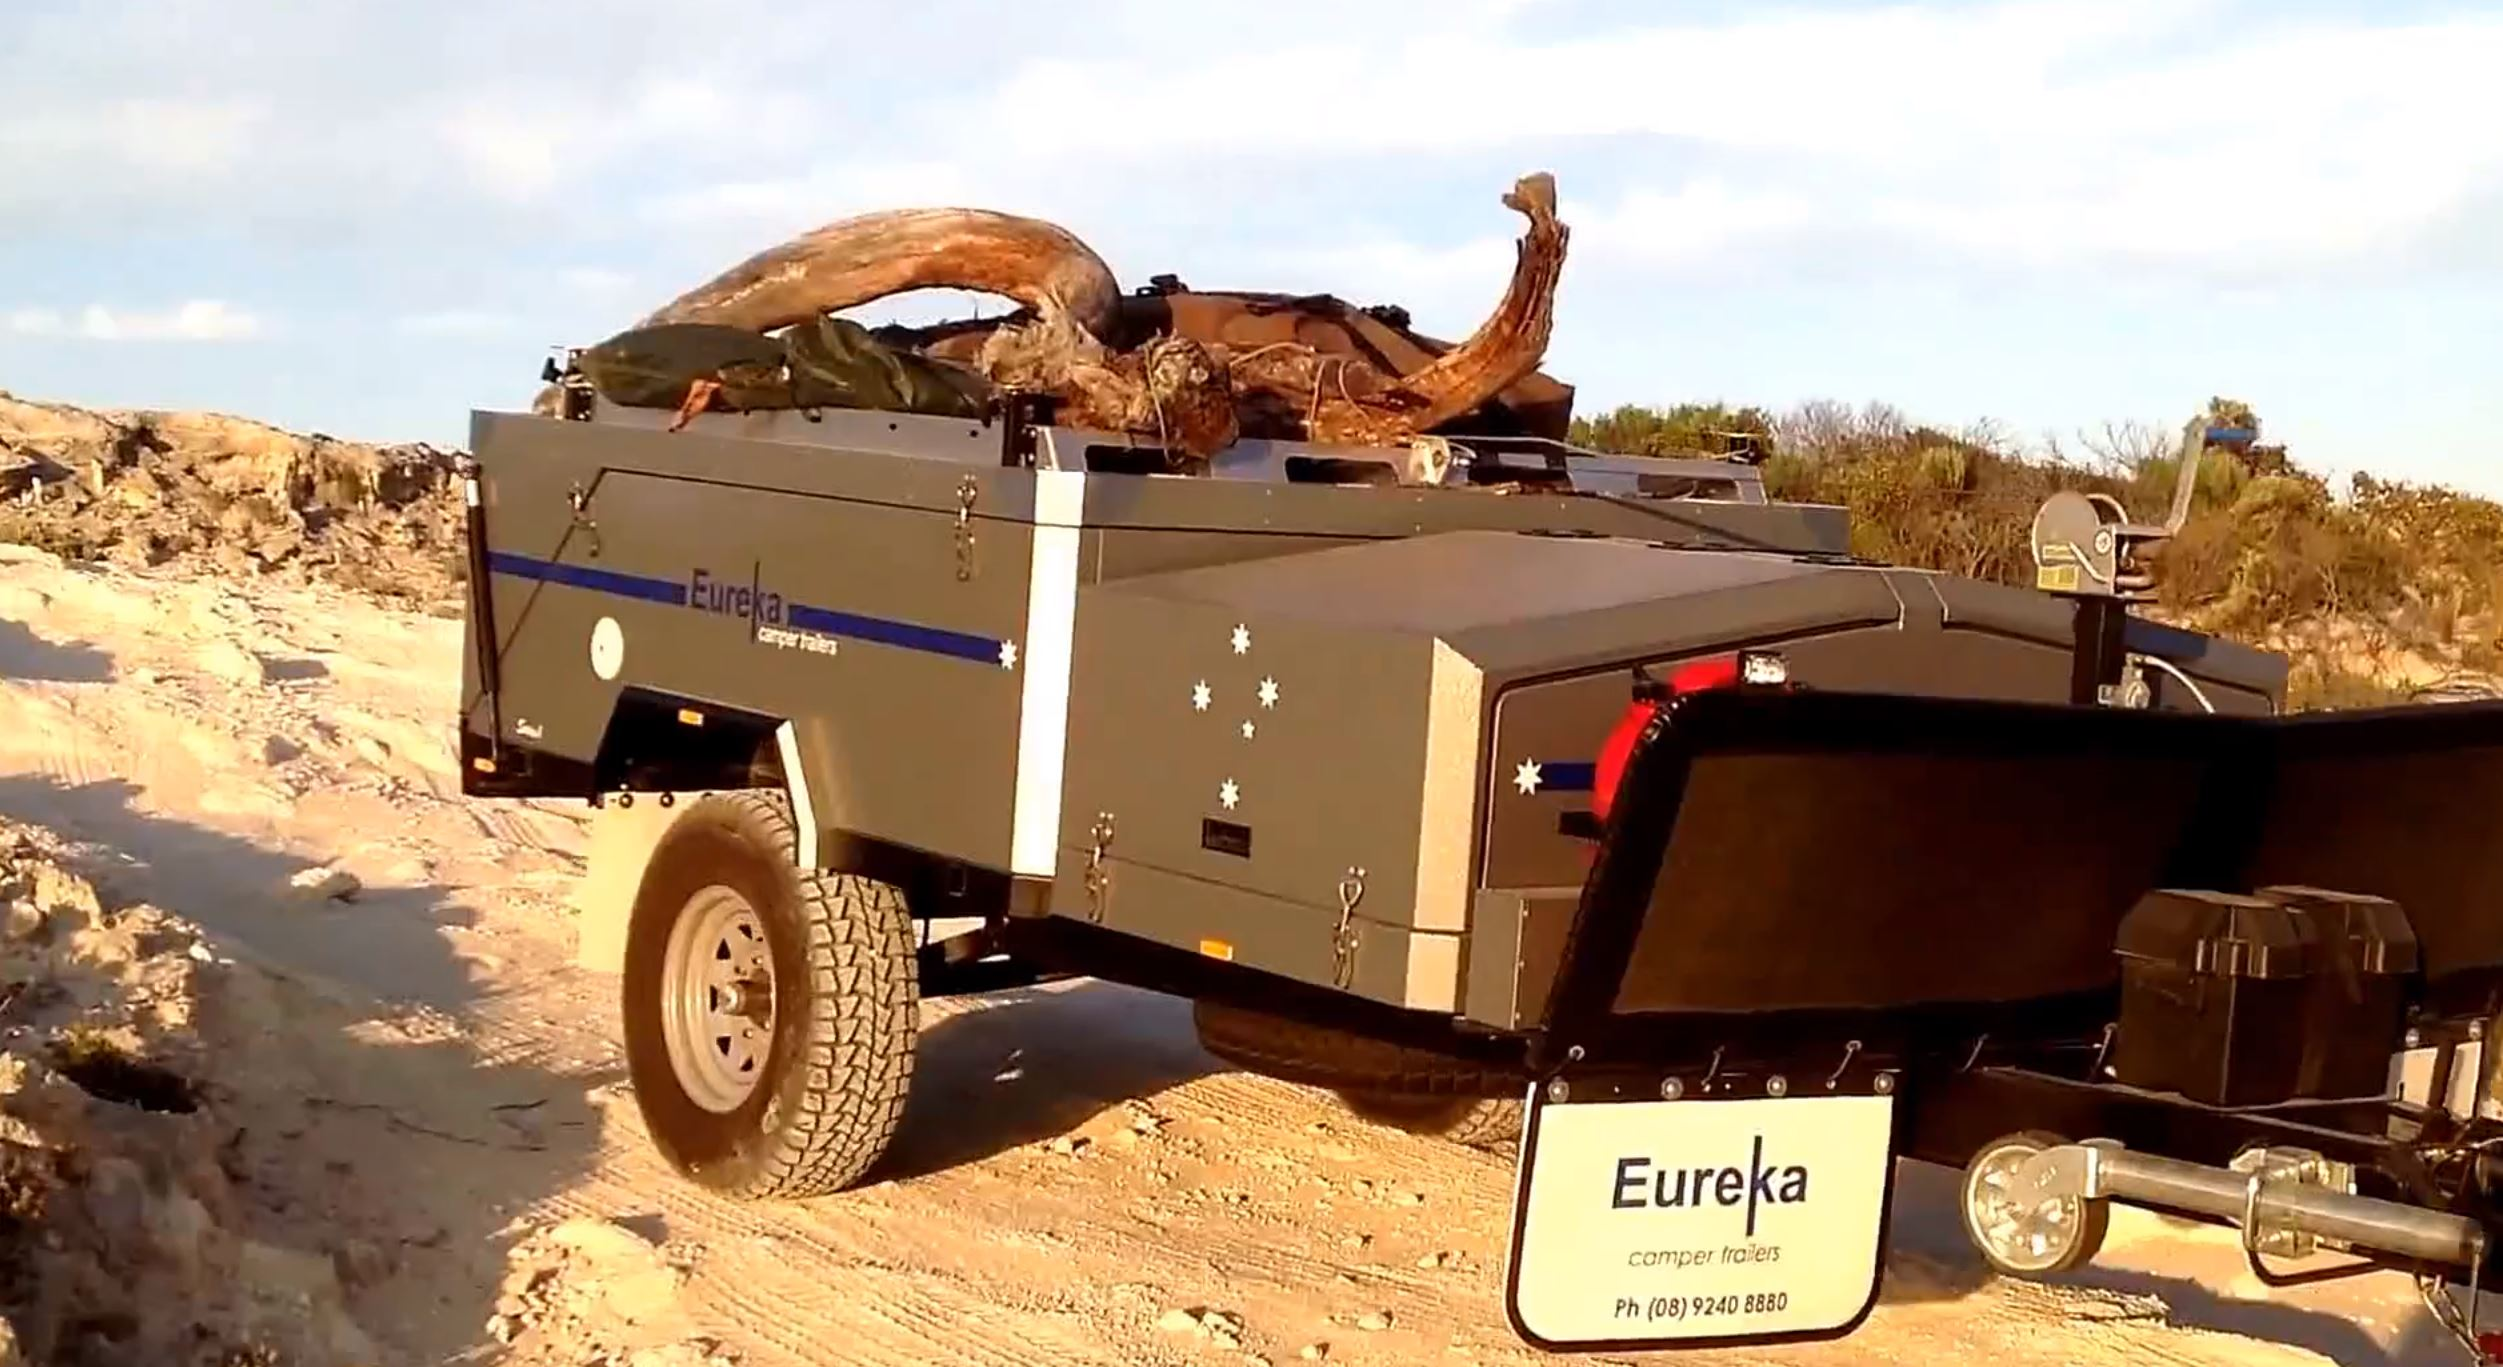 Eureka Off Road Camper Trailers - Perfect for your trip